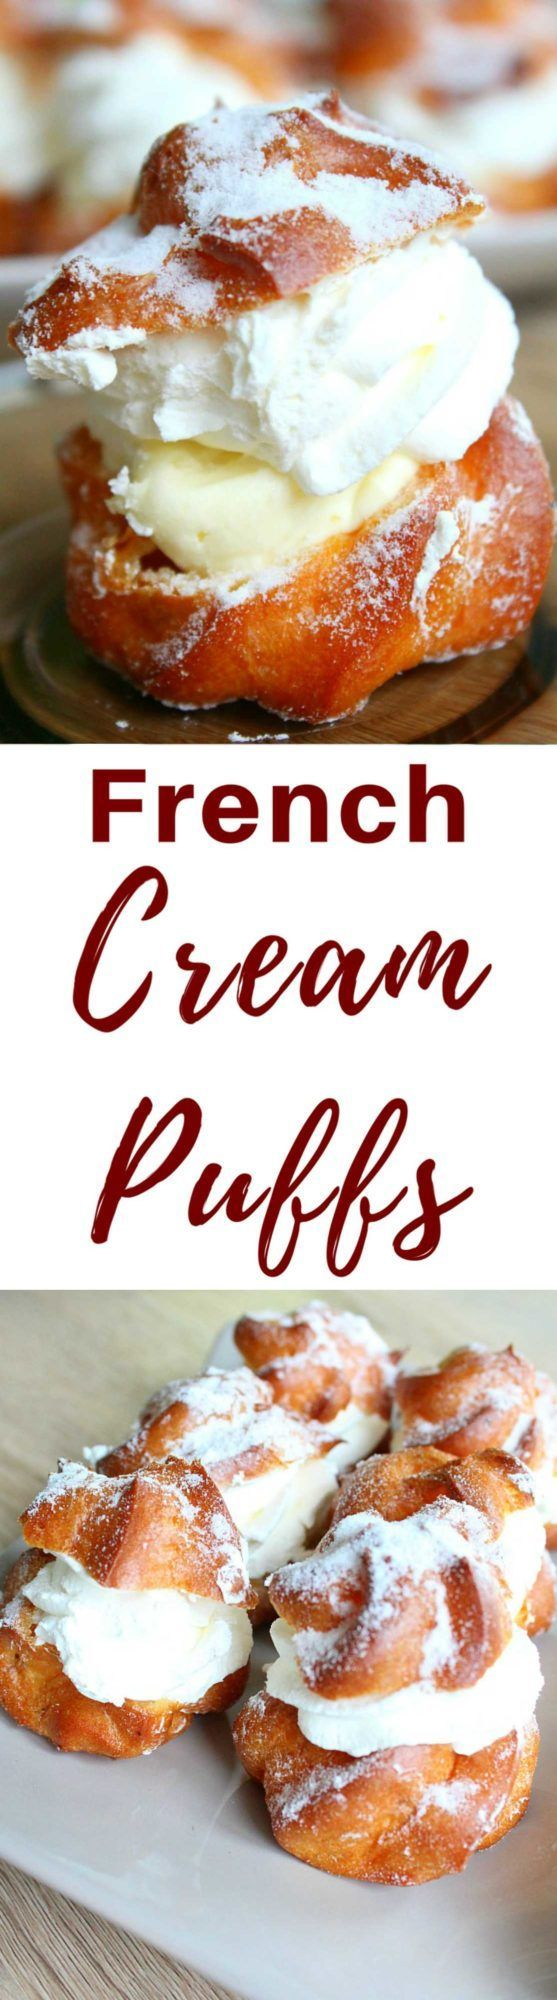 FRENCH CREAM PUFFS